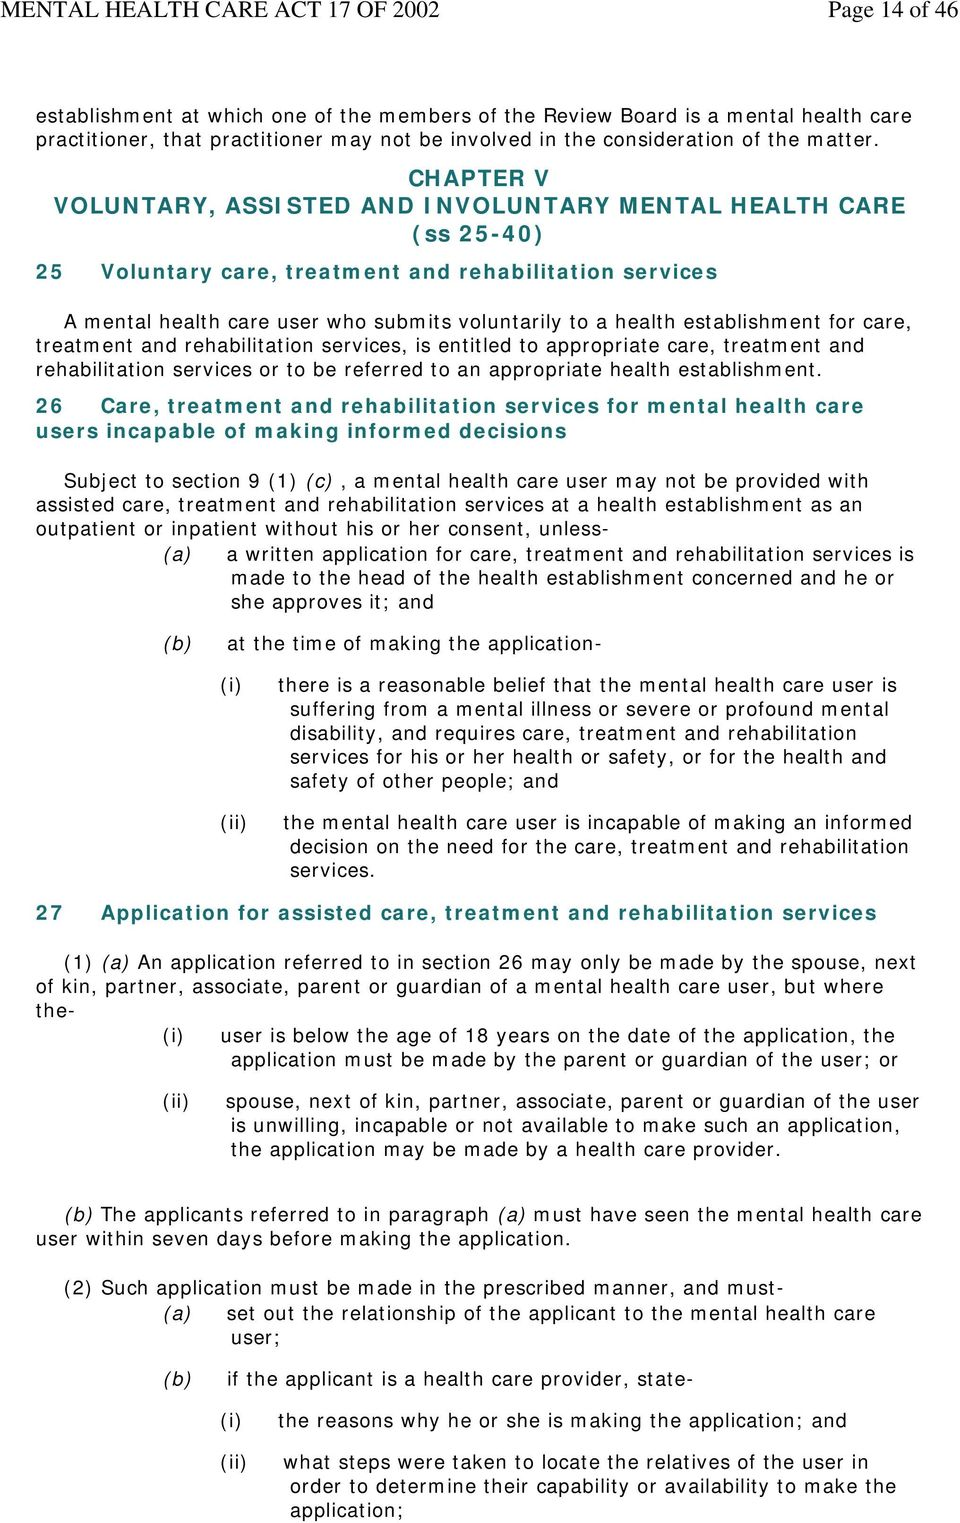 establishment for care, treatment and rehabilitation services, is entitled to appropriate care, treatment and rehabilitation services or to be referred to an appropriate health establishment.